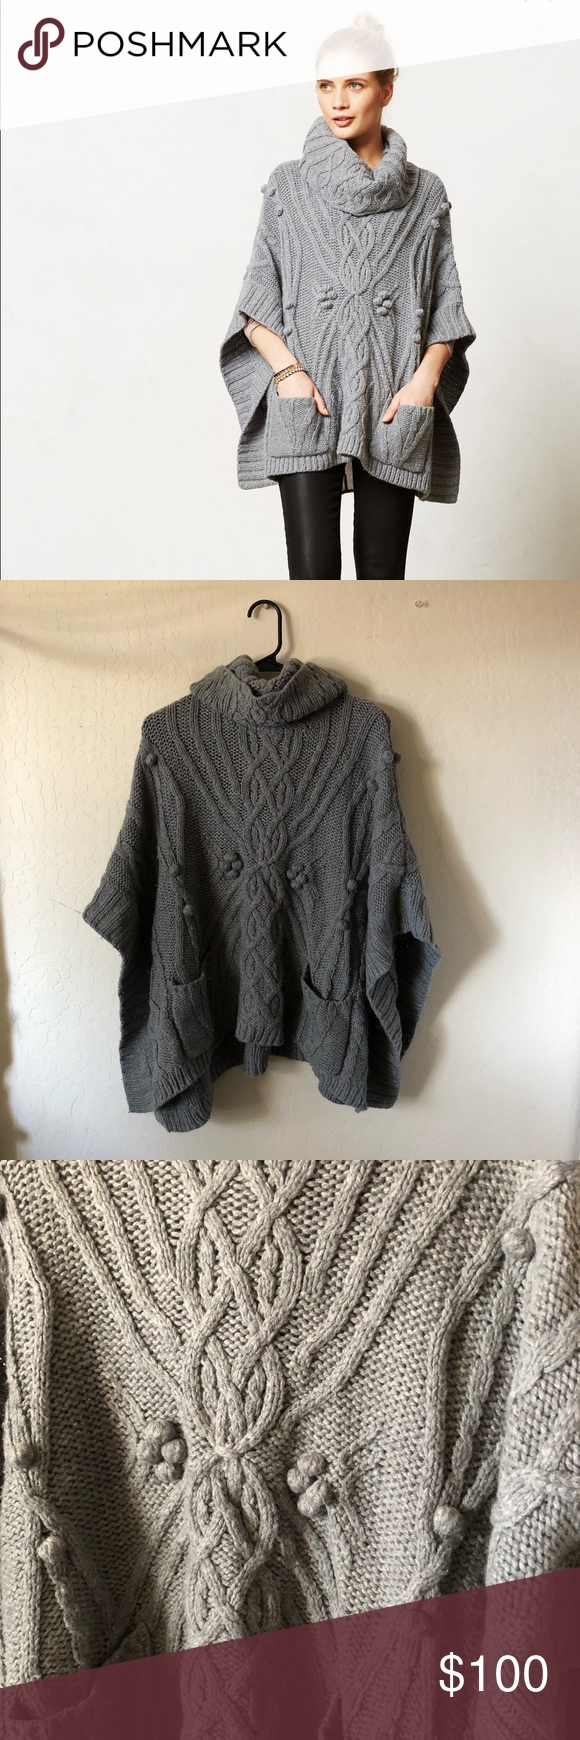 euc anthro knit gray poncho anthropologie sleeping on snow cabled cowl neck/turtleneck knit poncho. has 3D pom poms, buttons on the side of the sleeves, and pockets. truly everything you could want. slight pilling, flawless condition otherwise.   absolutely cozy and super warm. OSFA. measurements, laid flat: 37 pit to pit, 28 length. Anthropologie Sweaters Shrugs & Ponchos